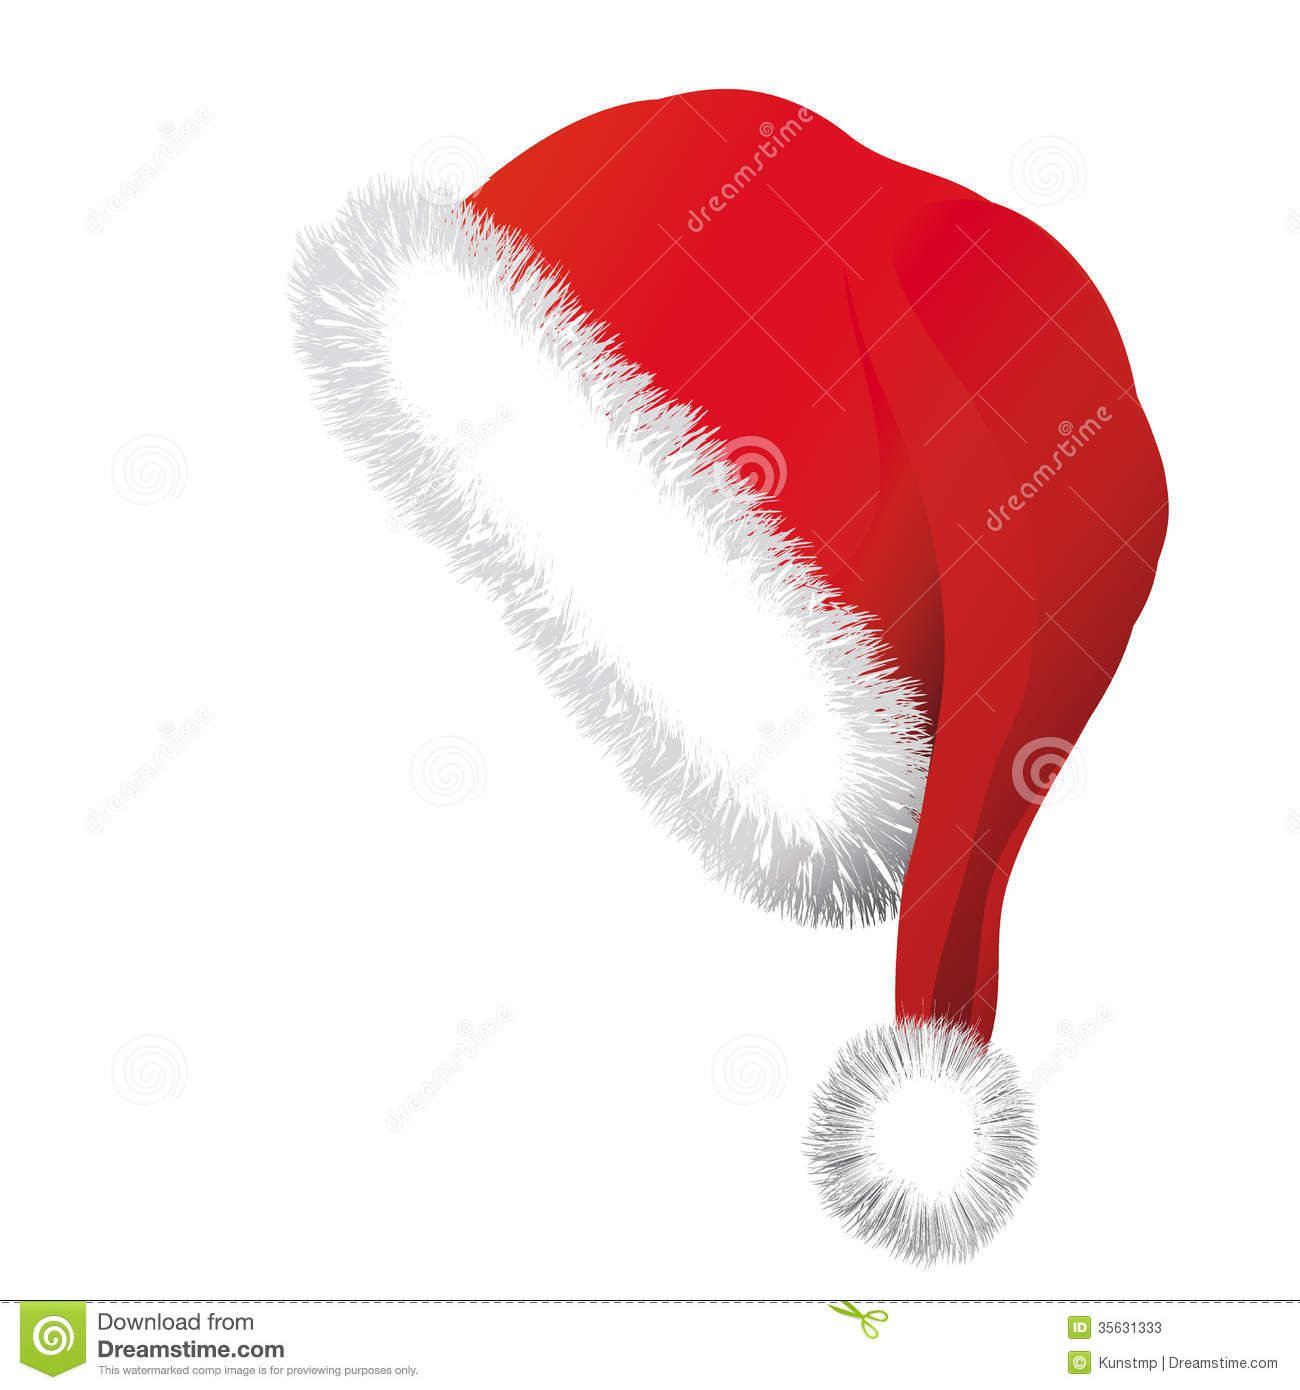 7b397cd1641c0 Santa Claus hat stock vector. Illustration of design - 35631333